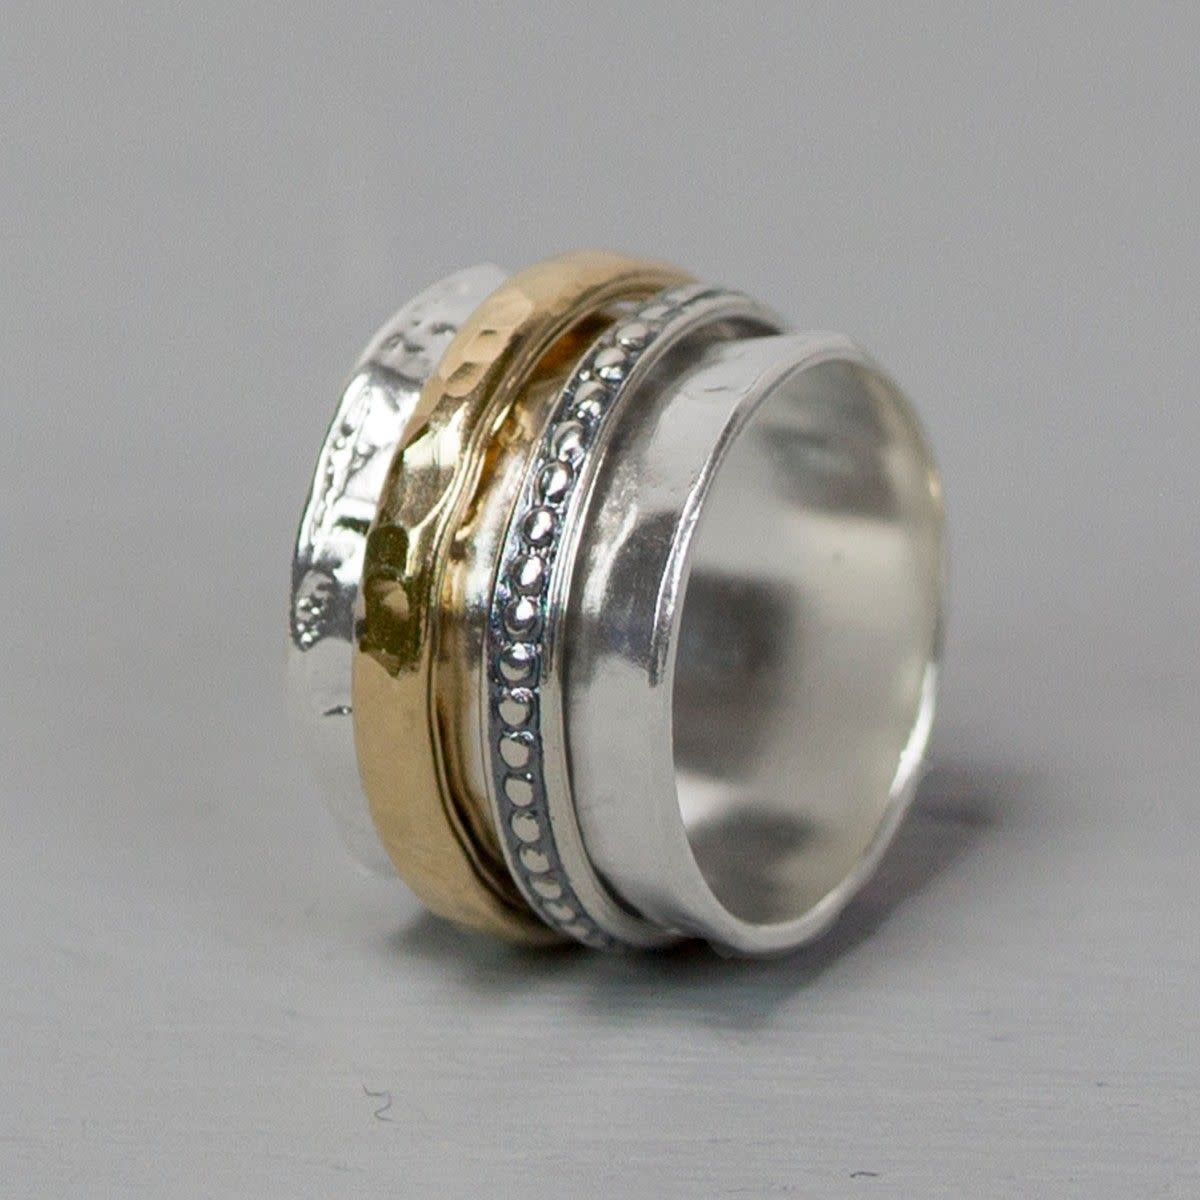 Ring Silver + Gold Filled 20099-9